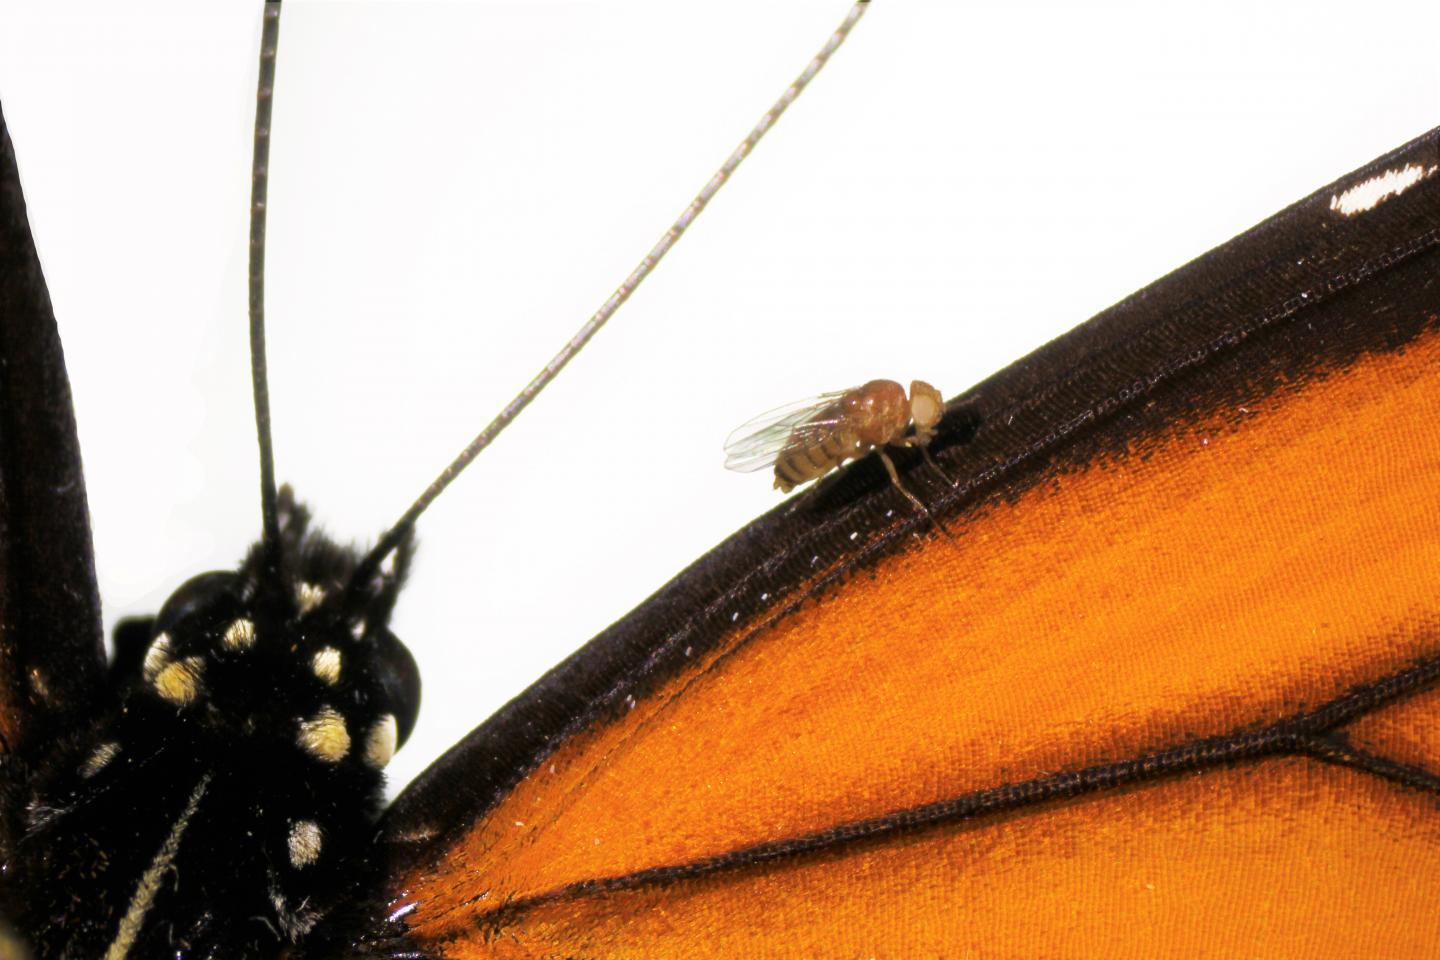 The fruit fly has been genetically engineered to have the ability to live off a poisonous plant, which the monarch butterfly can naturally do